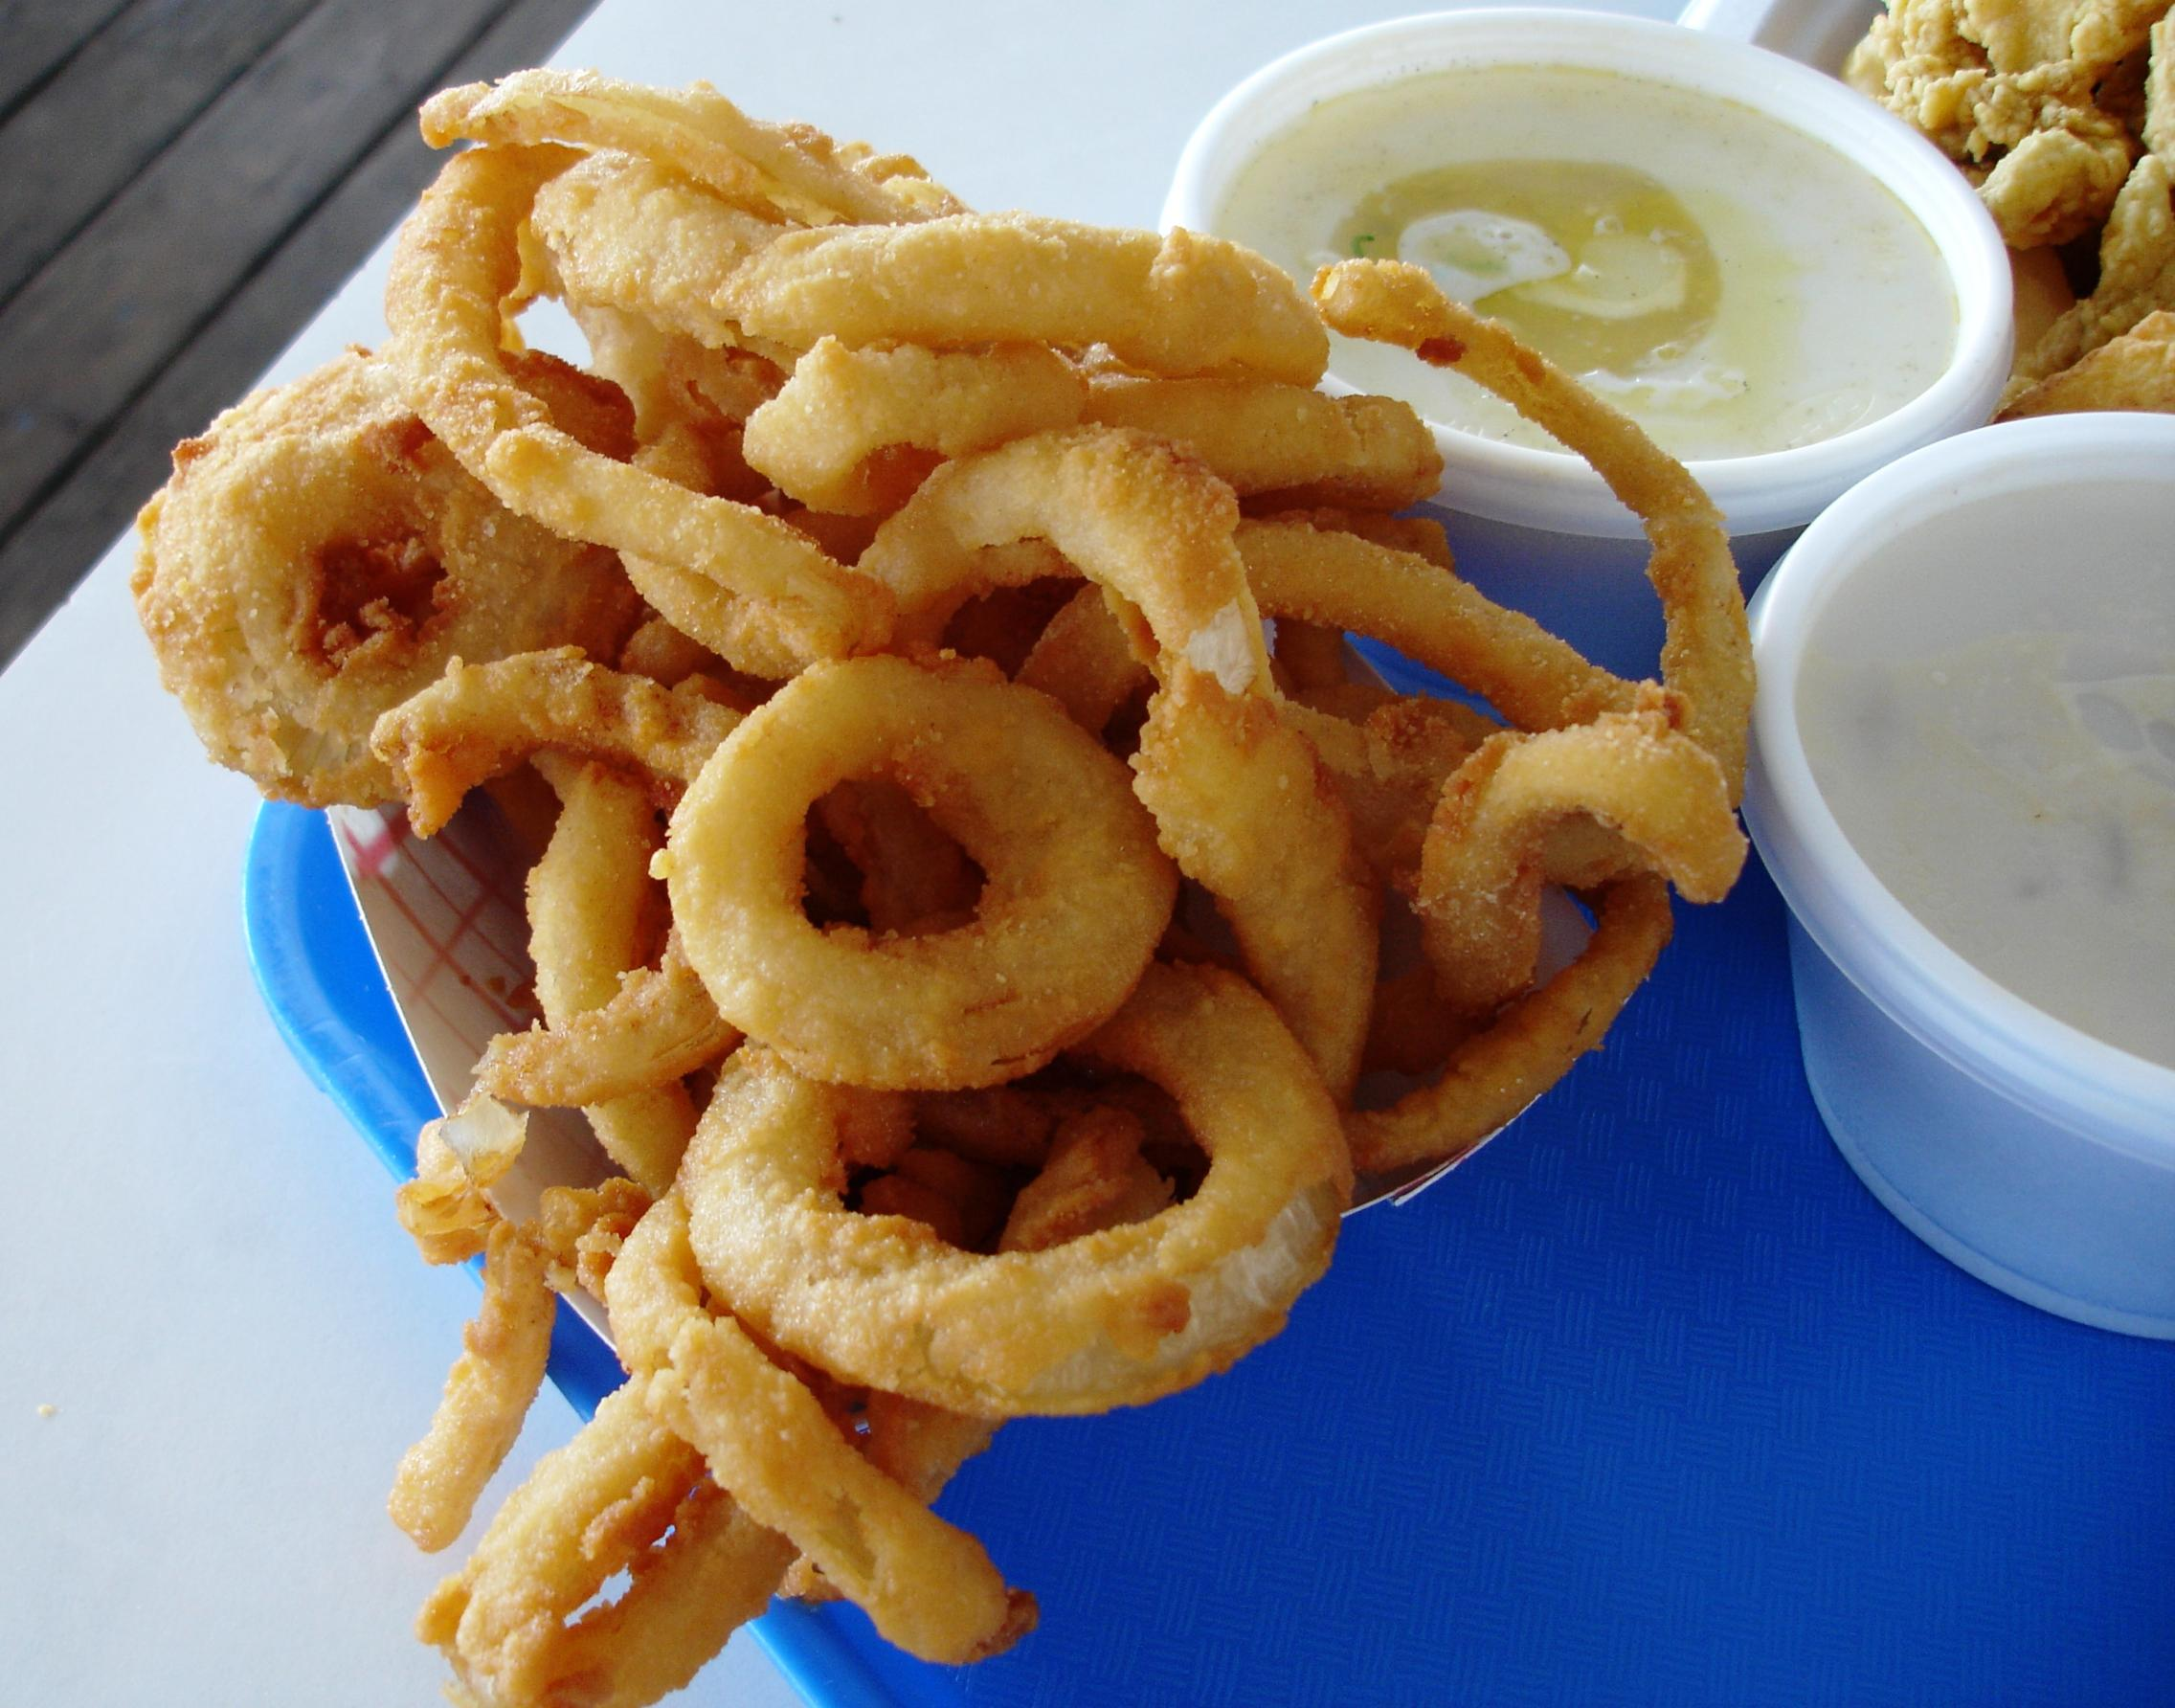 Onion rings are made on-site (onion middles are also available).